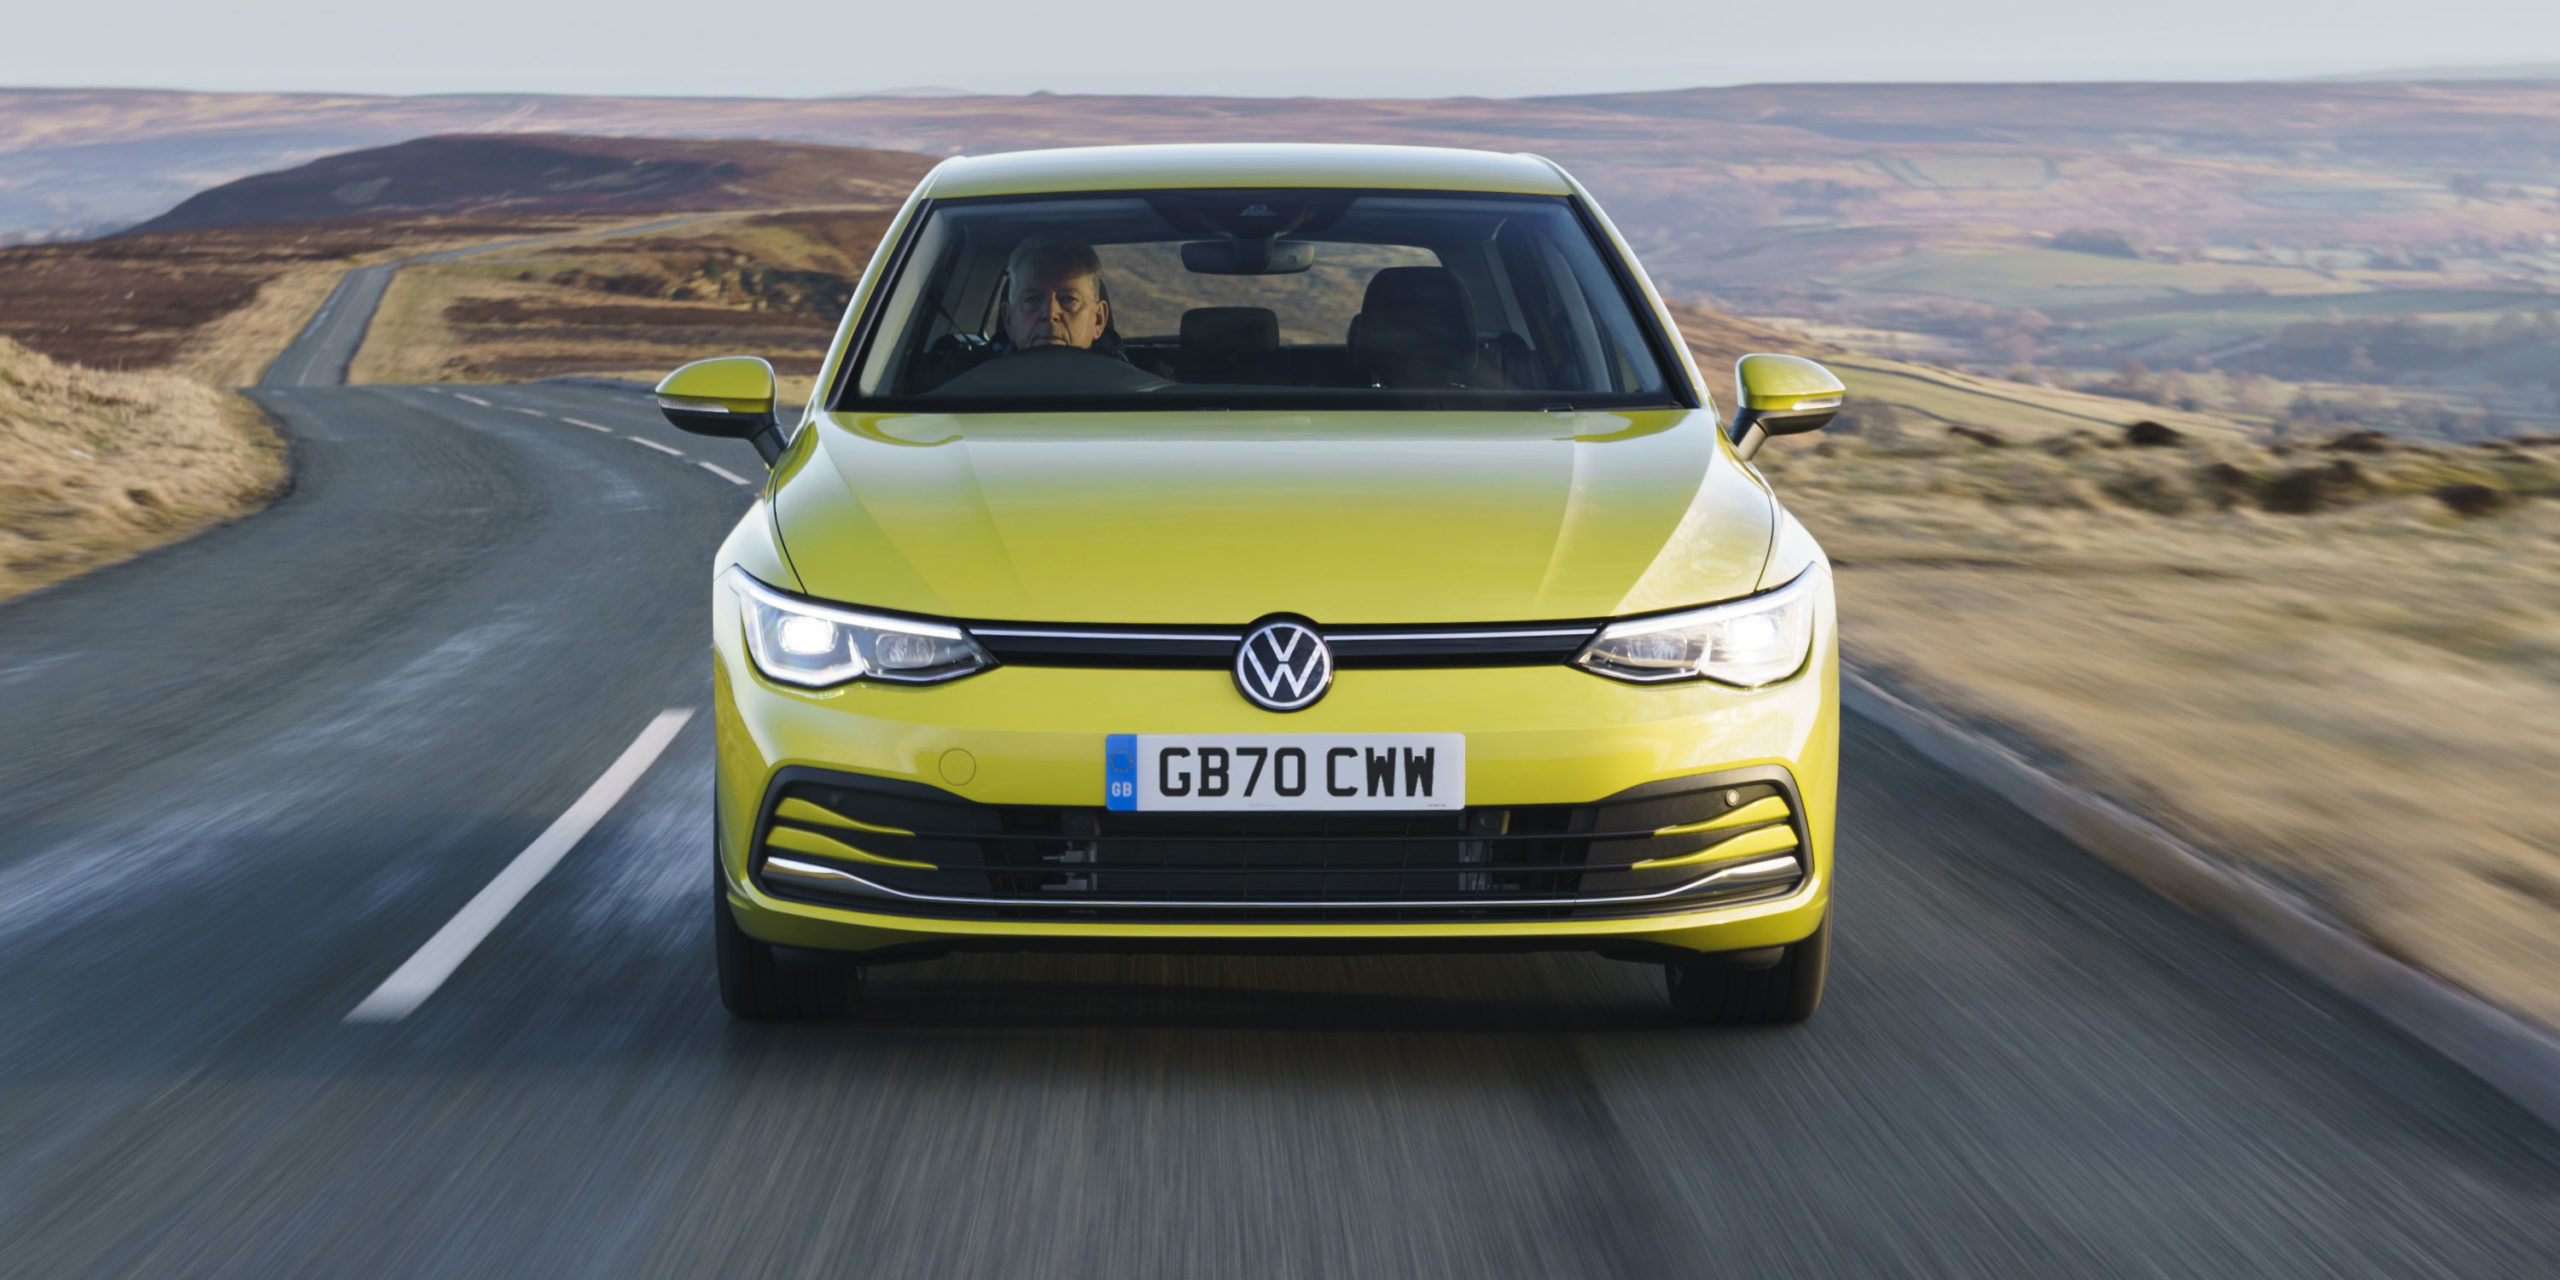 What will the 2020 number plate be? | carwow